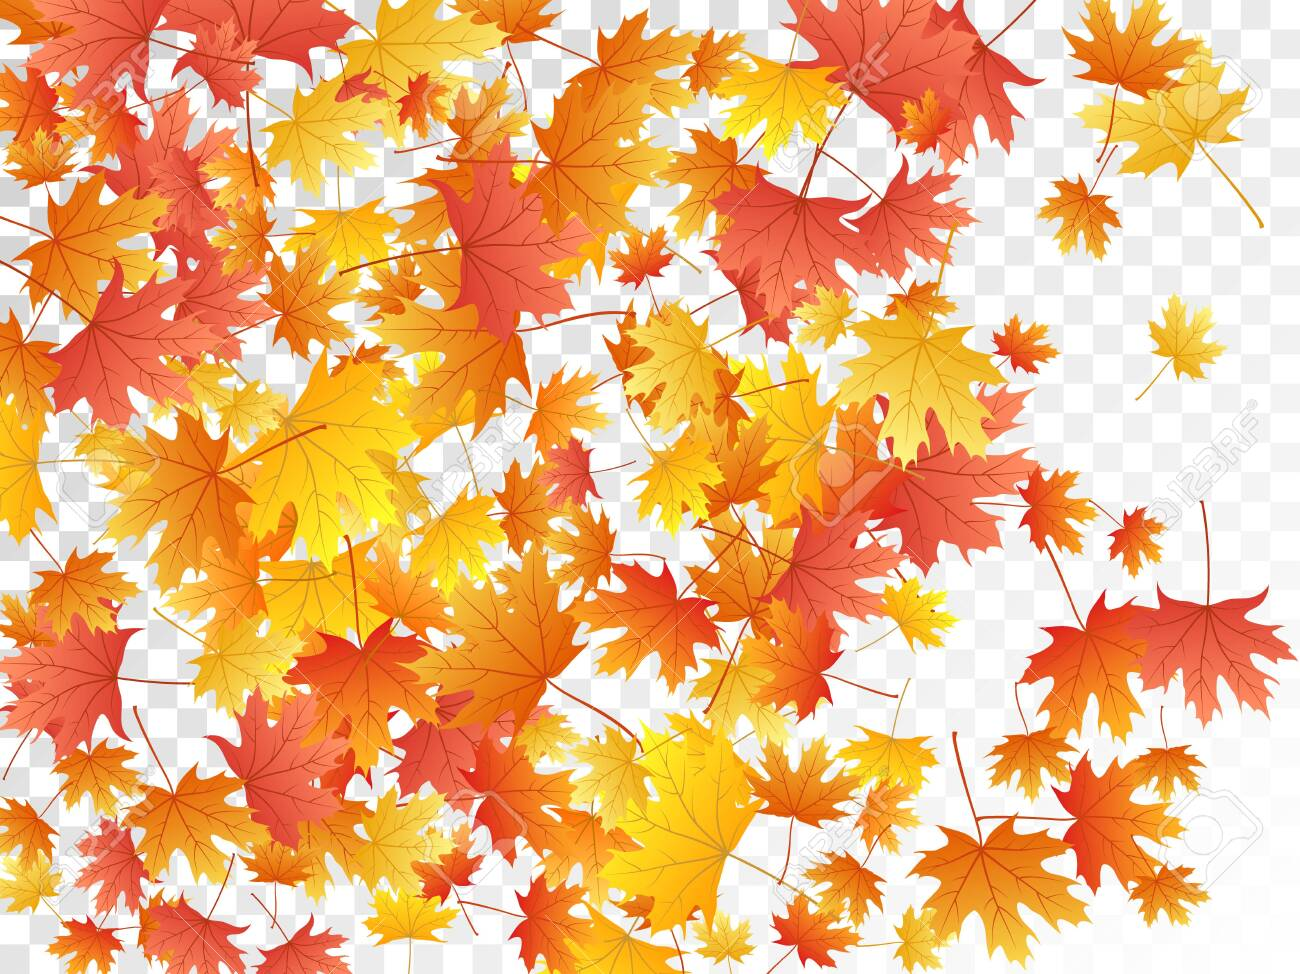 Maple Leaves Vector Autumn Foliage On Transparent Background Royalty Free Cliparts Vectors And Stock Illustration Image 131339134